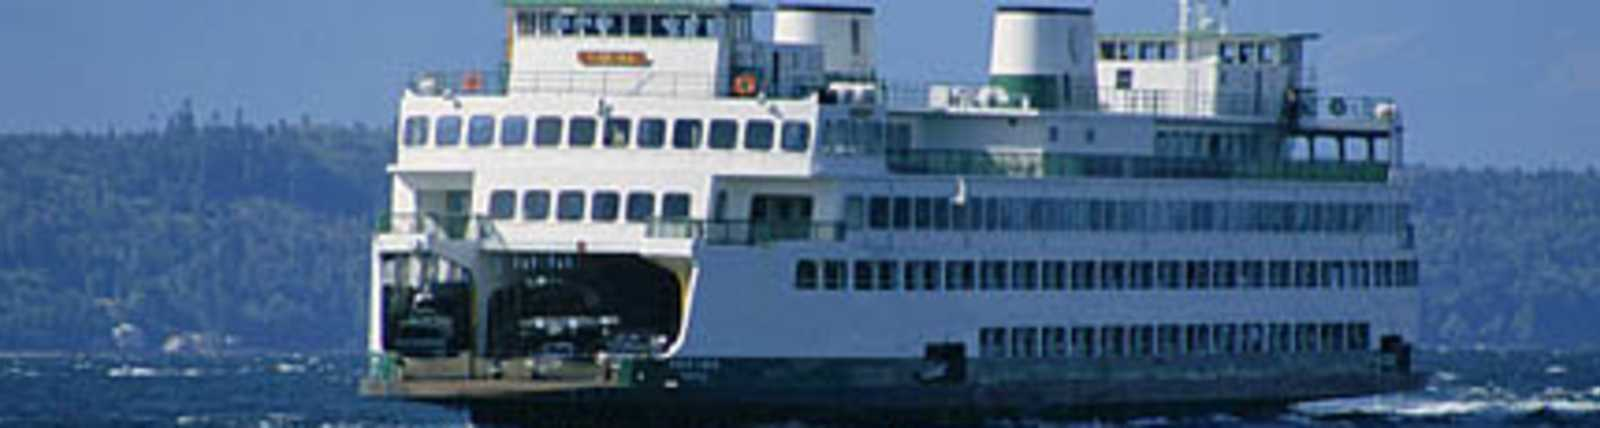 Washington_State_Ferries.jpg